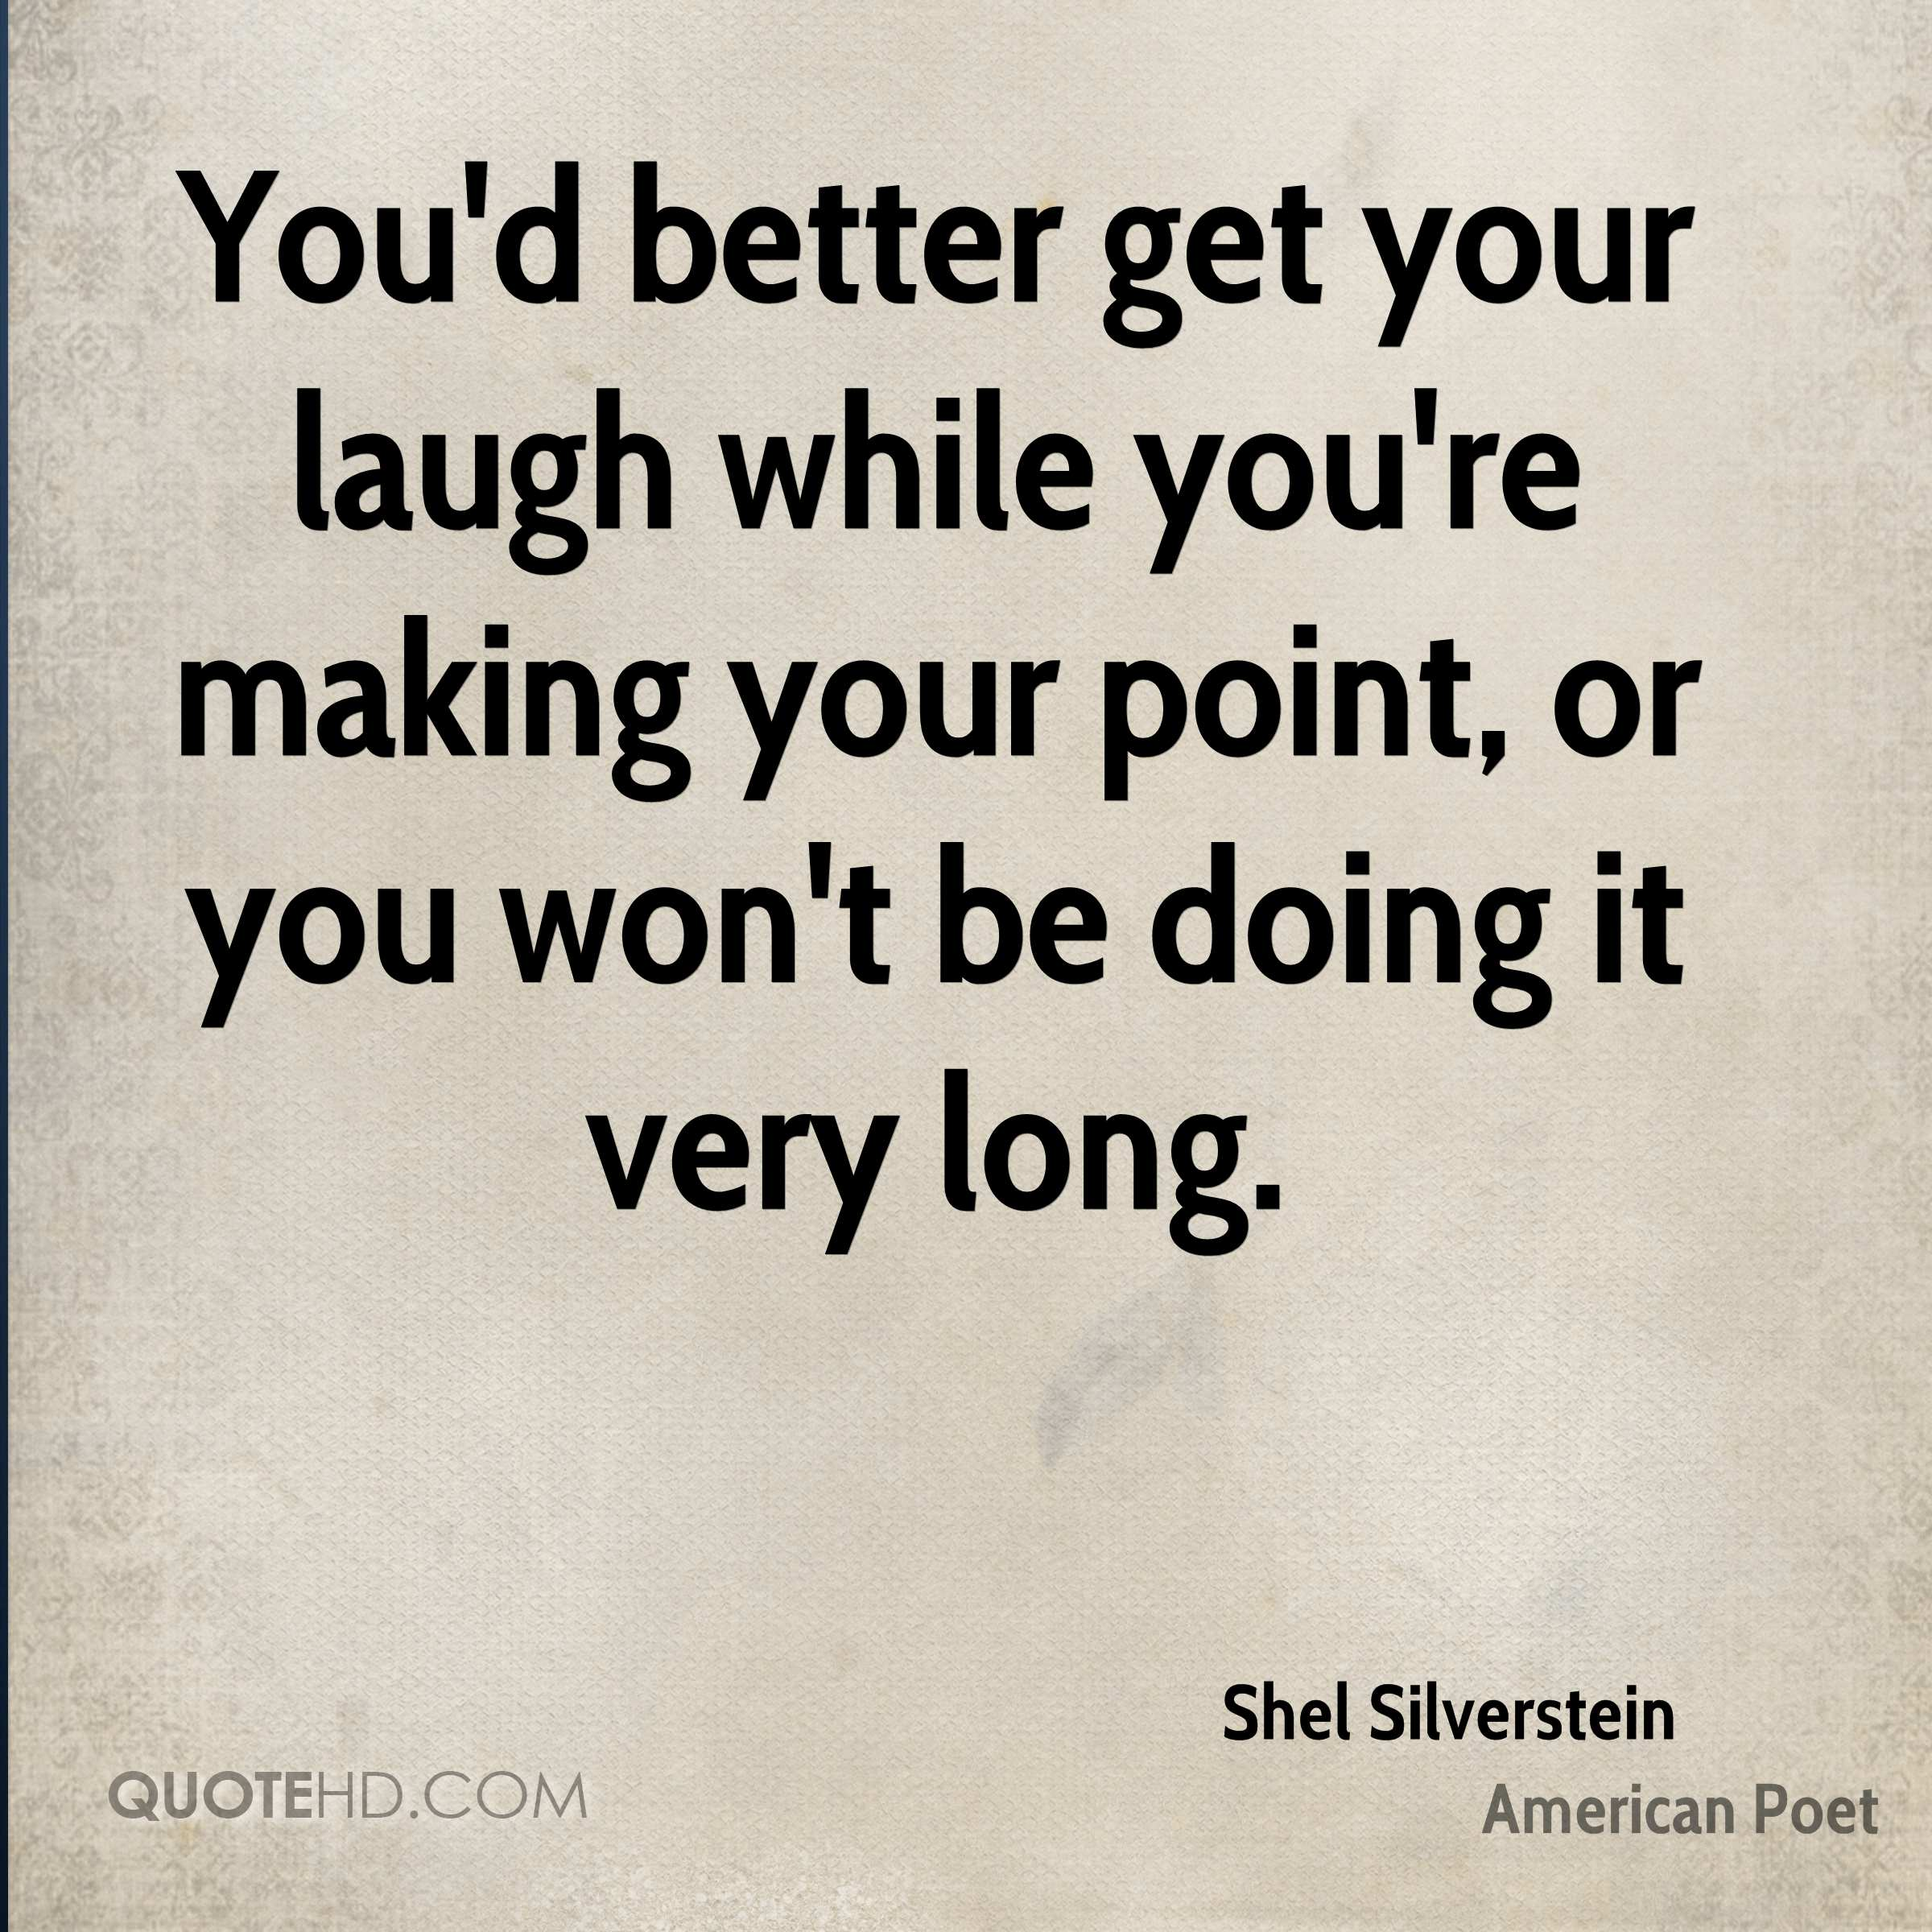 You'd better get your laugh while you're making your point, or you won't be doing it very long.